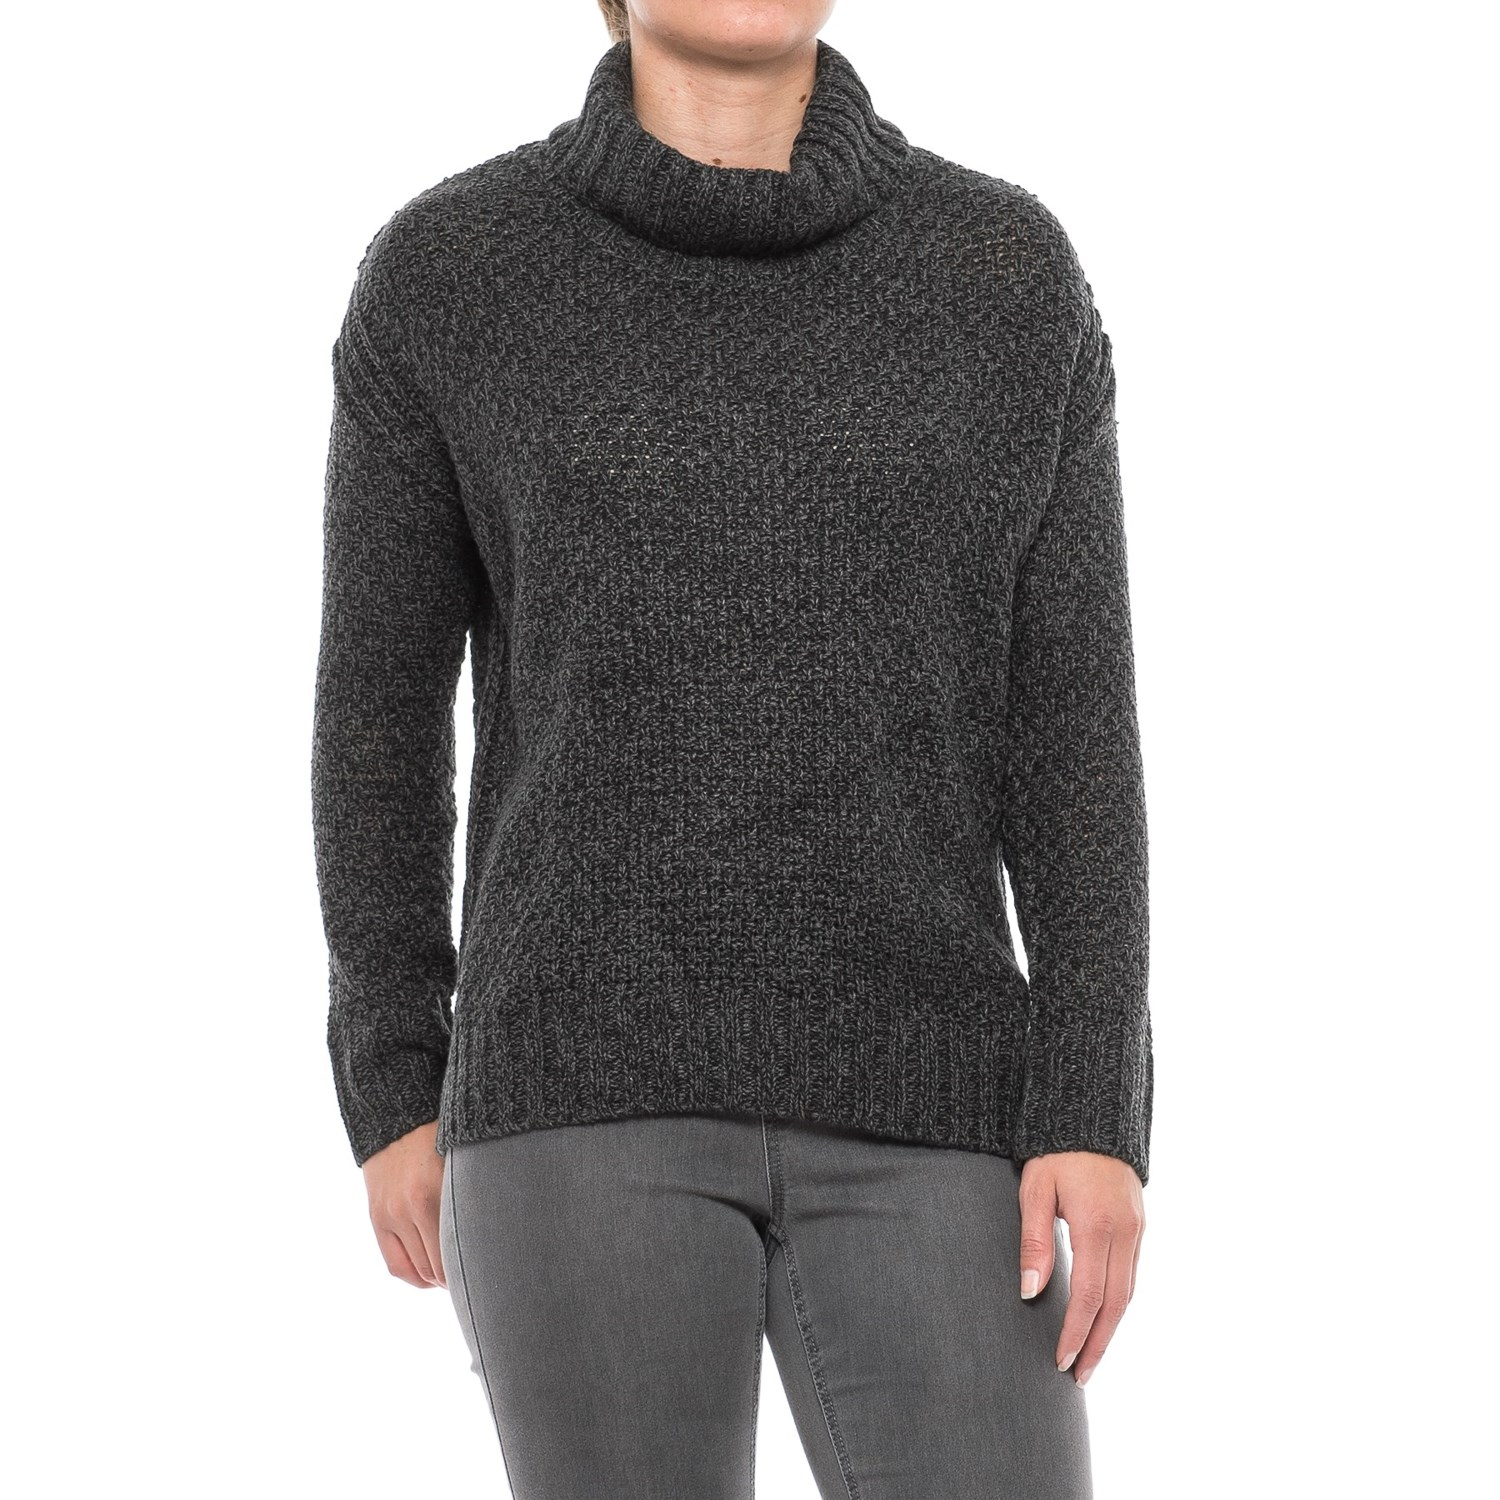 Chelsea & Theodore High-Low Turtleneck Sweater (For Women) - Save 59%